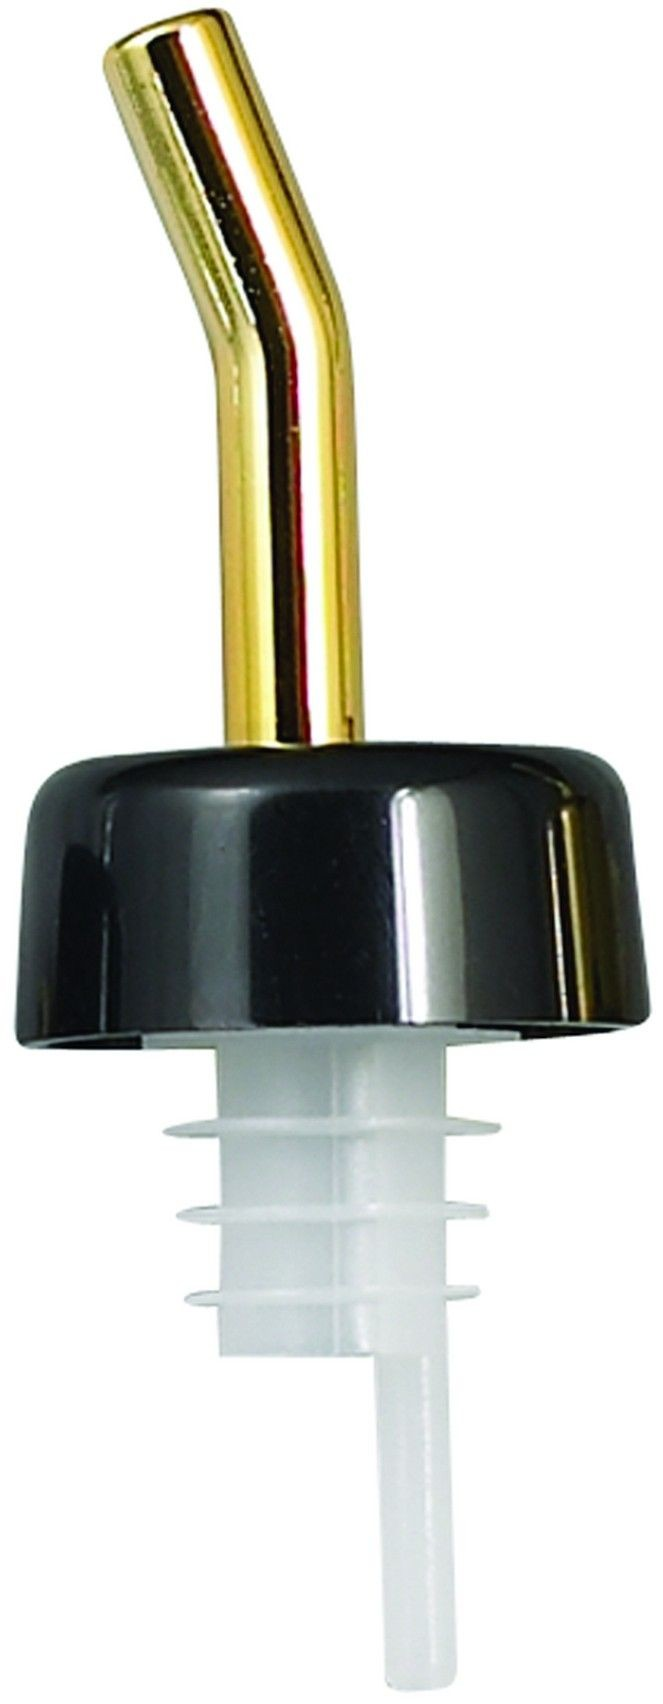 Winco PPW-GDK Whiskey Free Flow Pourer with Black Collar and Golden Spout